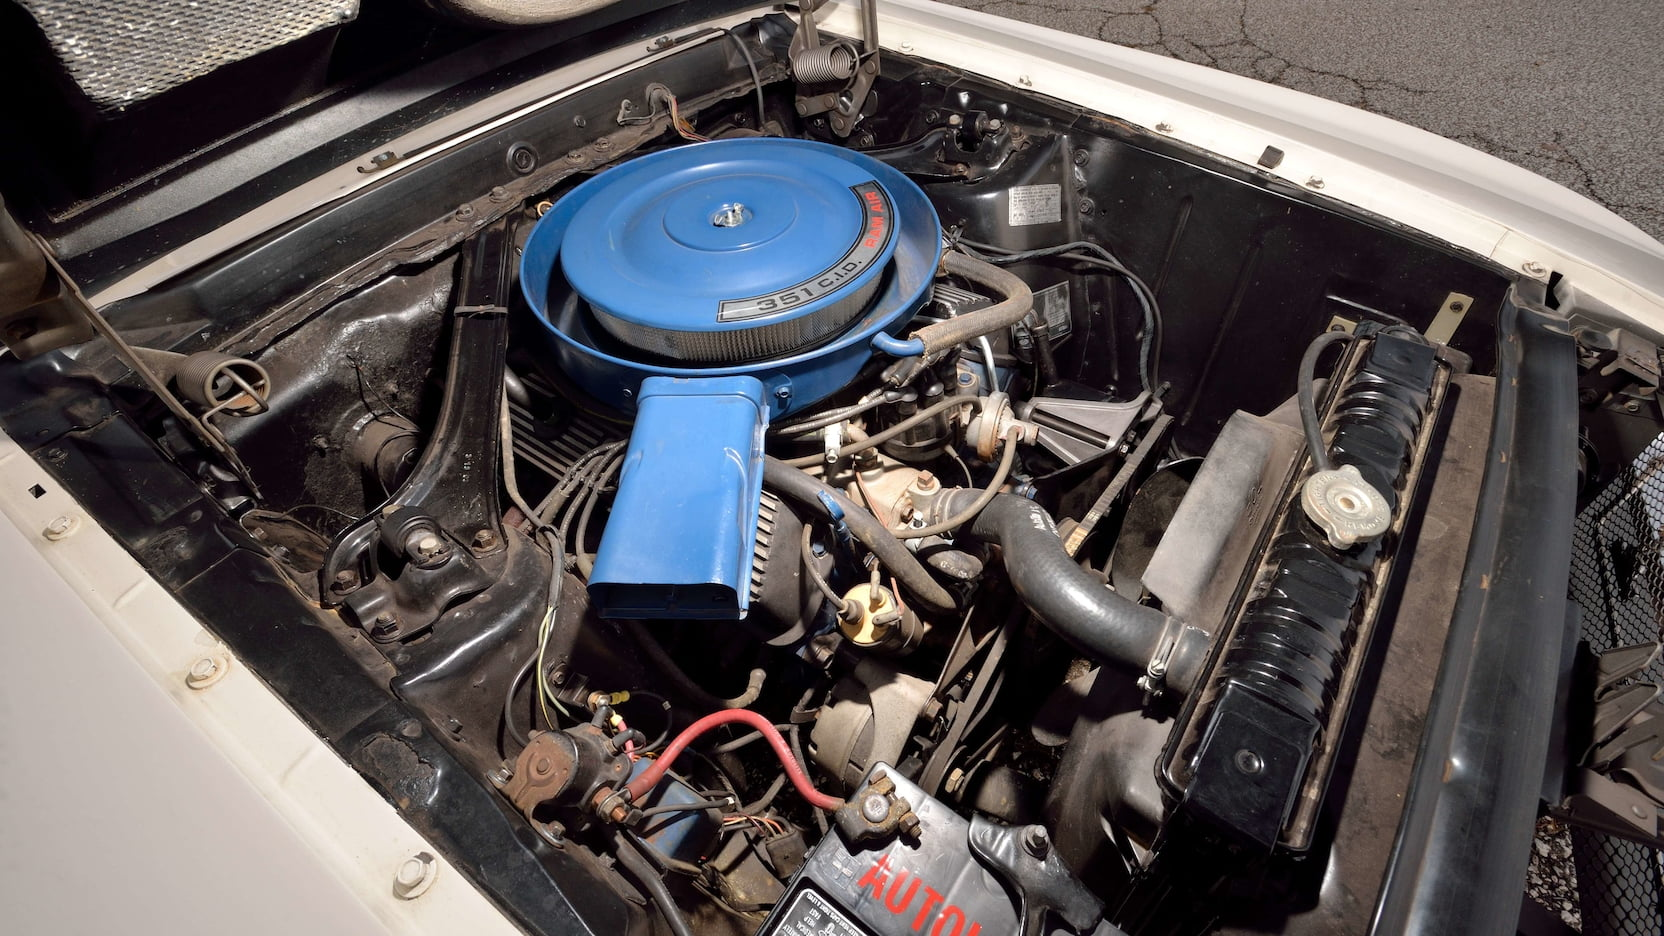 1970 Shelby GT350 engine